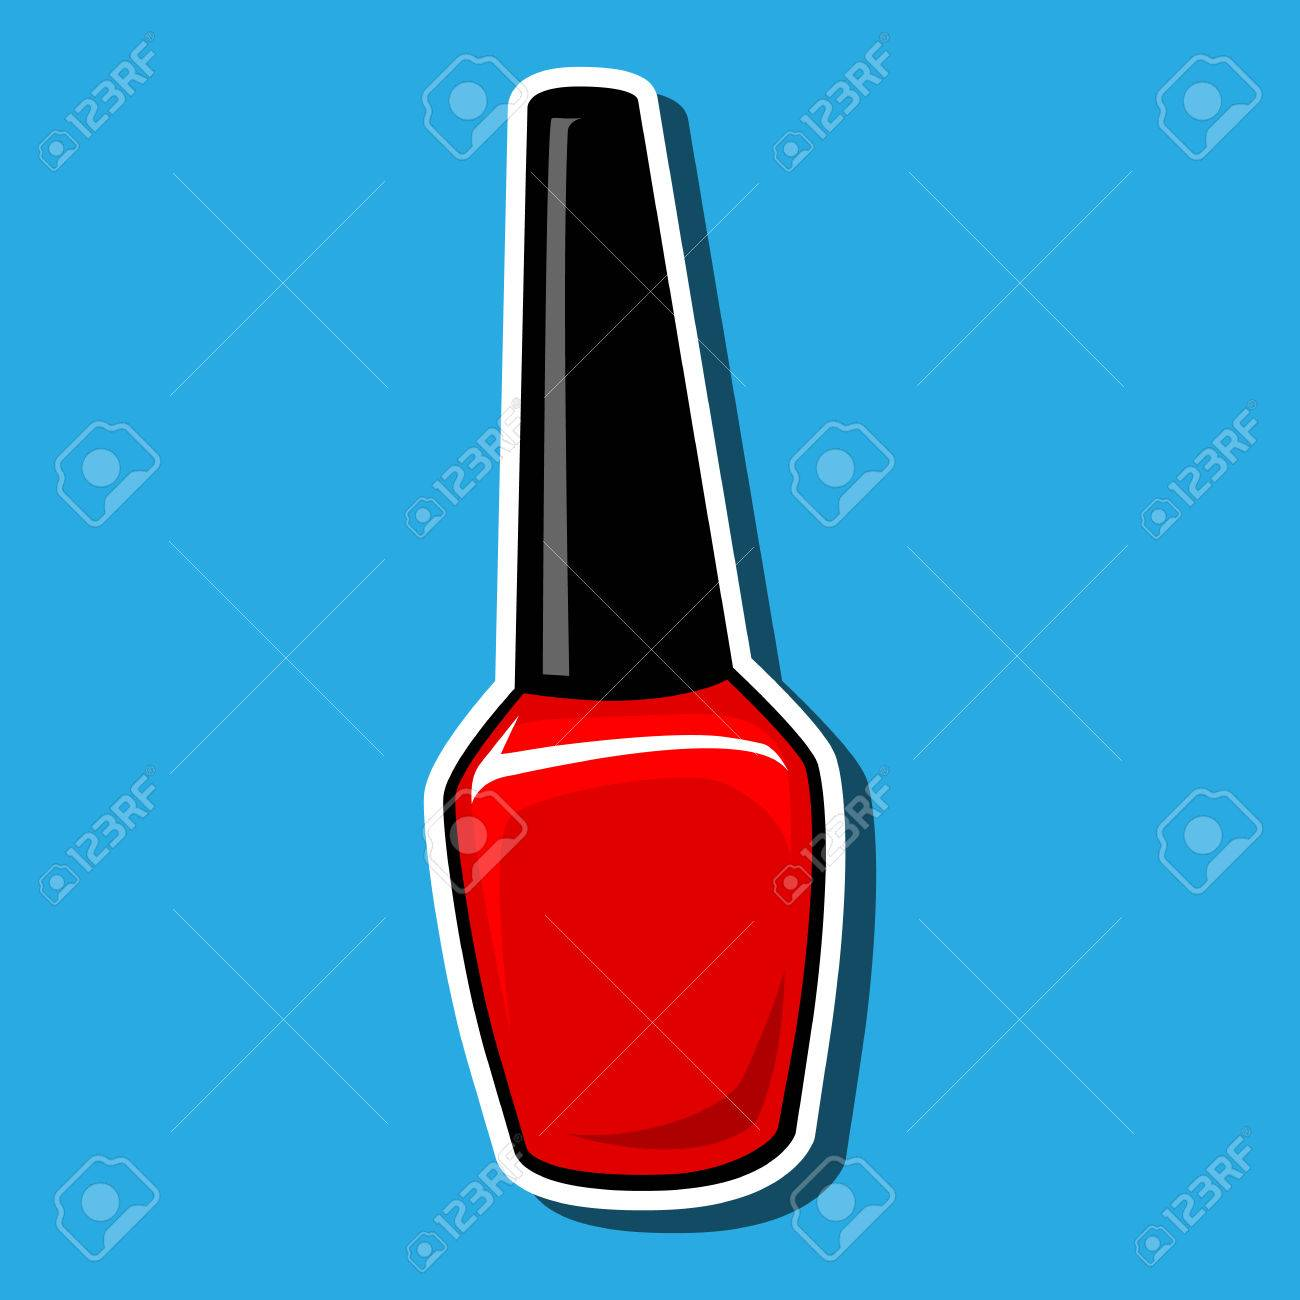 How To Draw A Cartoon Nail Polish Bottle - Creative Touch